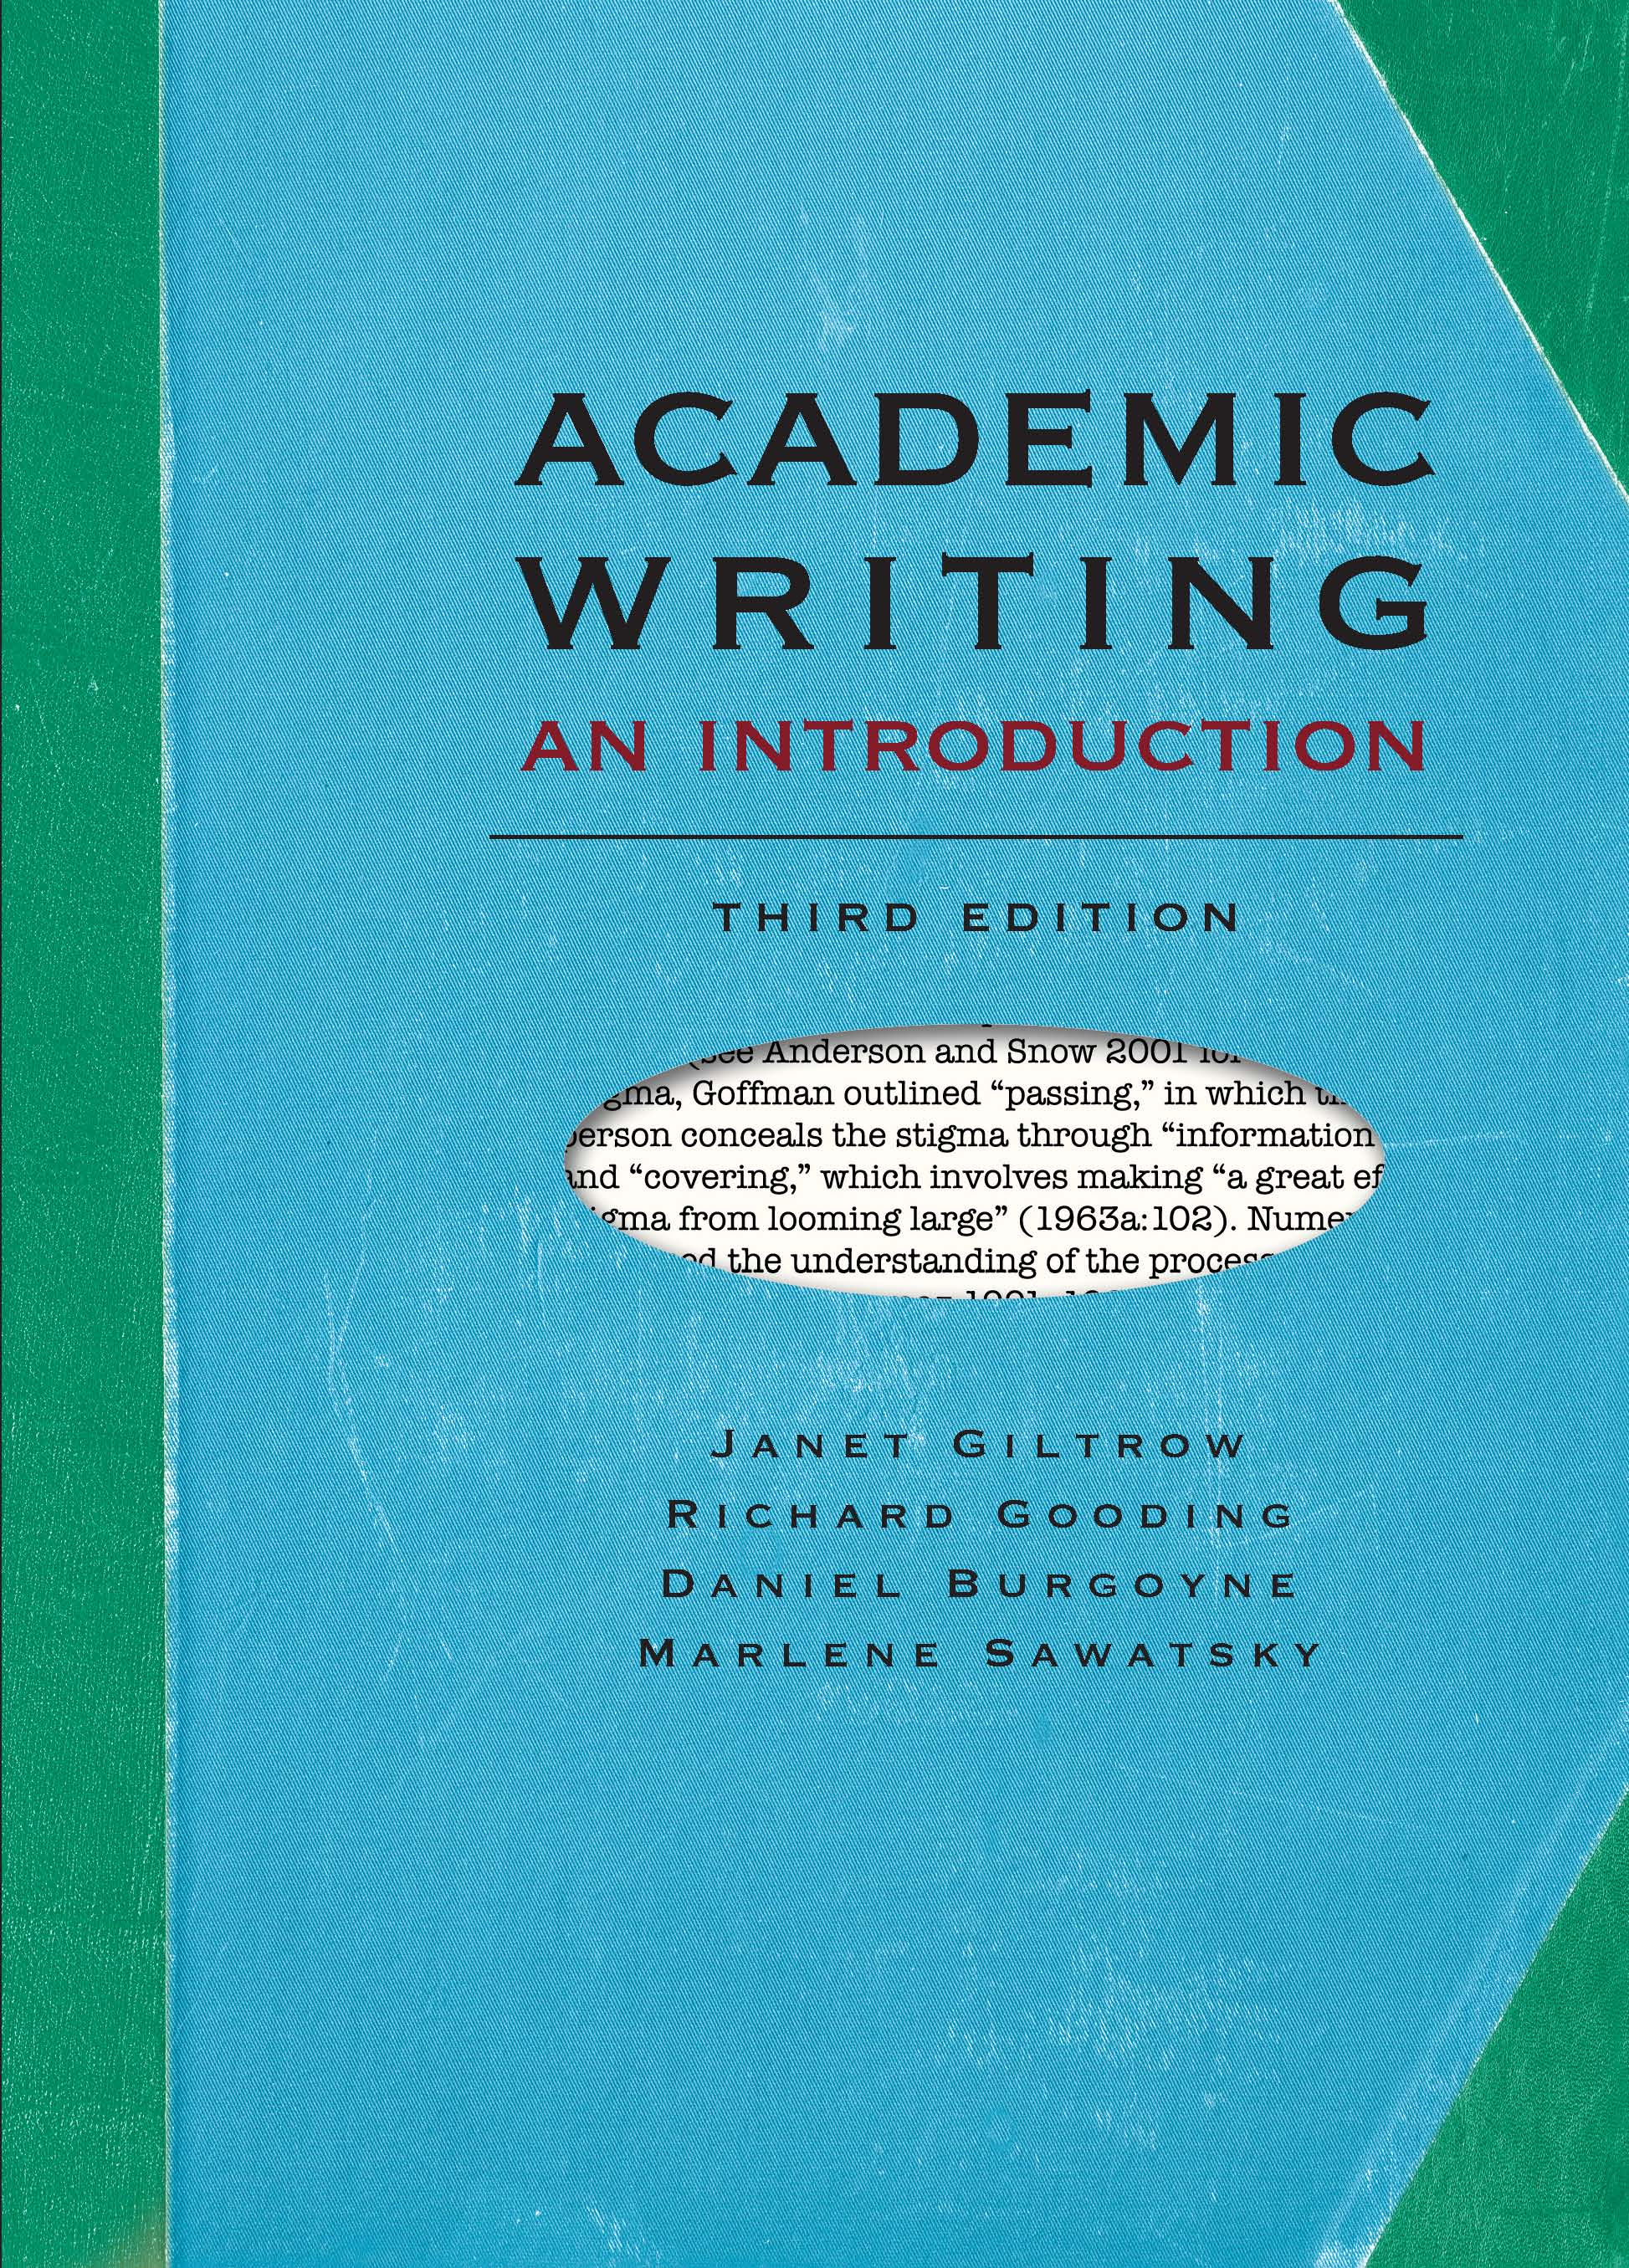 academic writing real world topics broadview press academic writing an introduction third edition